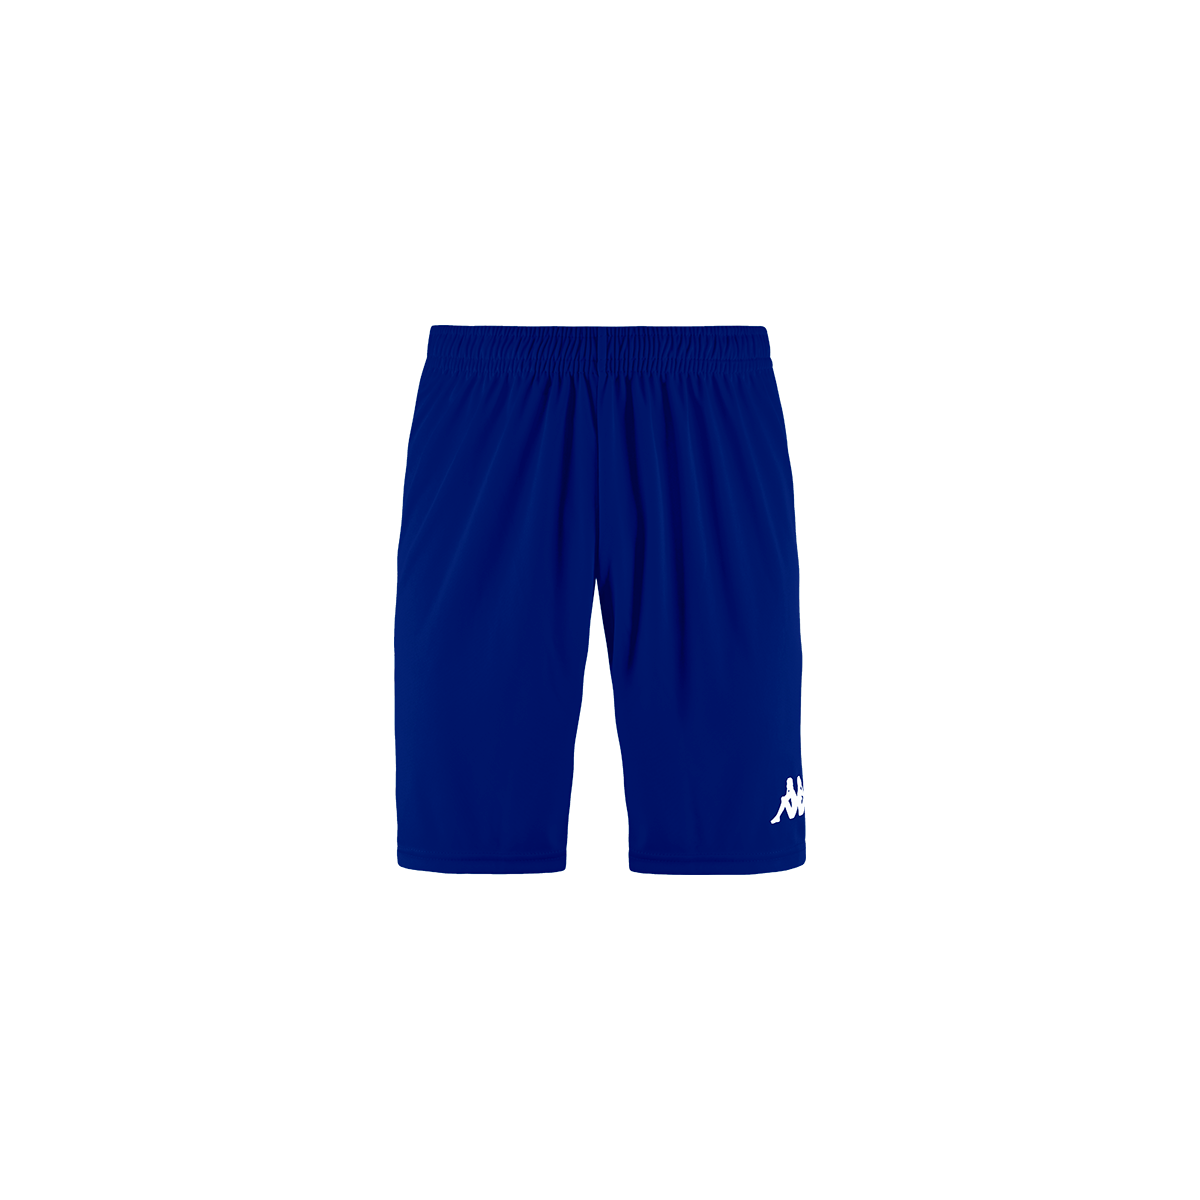 Kappa Wusis Match Short - Blue Nautic